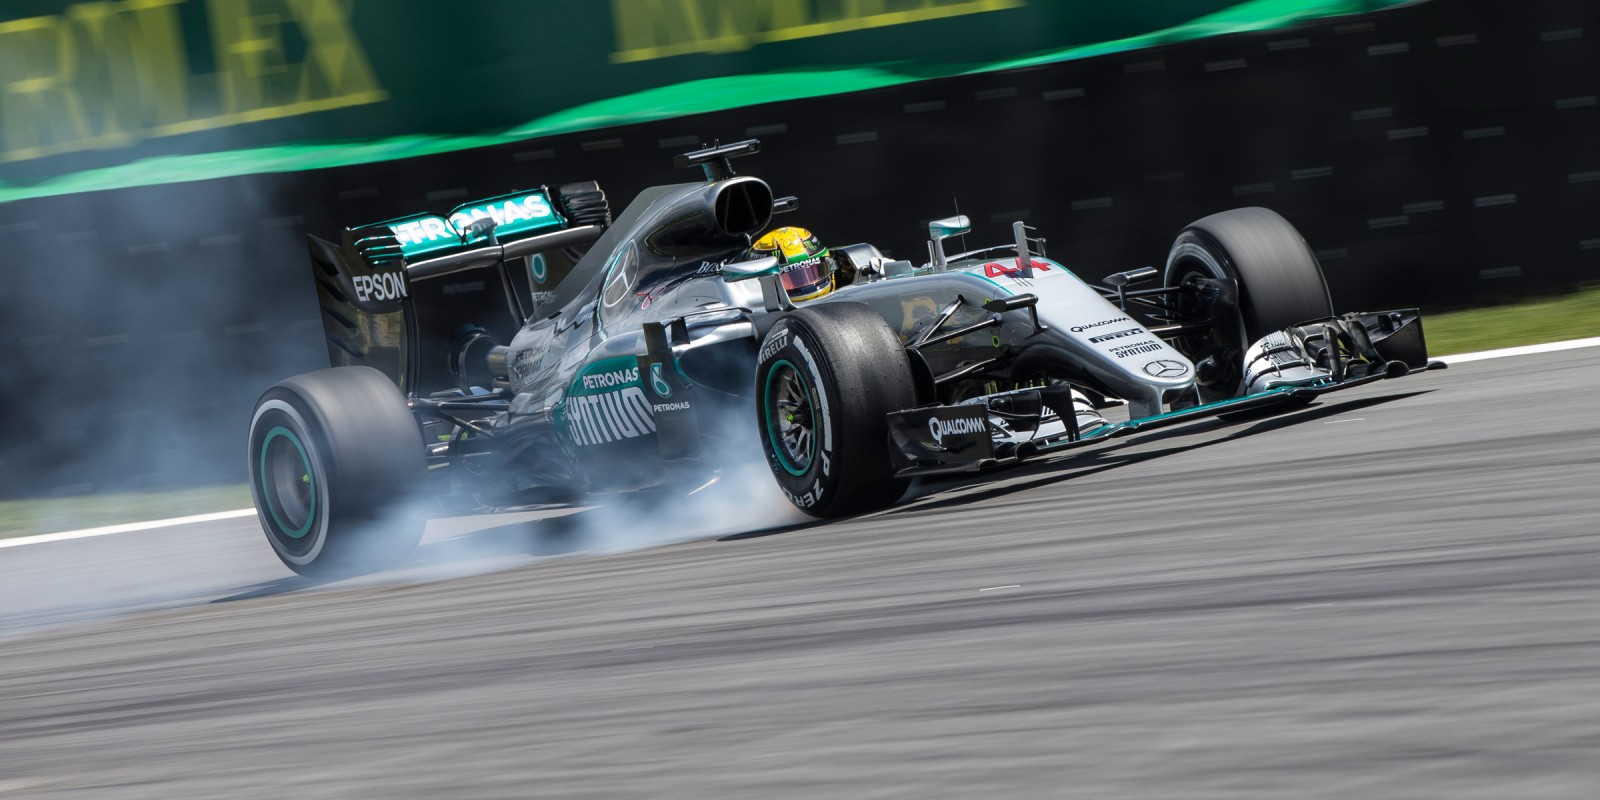 Saturday images from the 2016 Brazilian Grand Prix